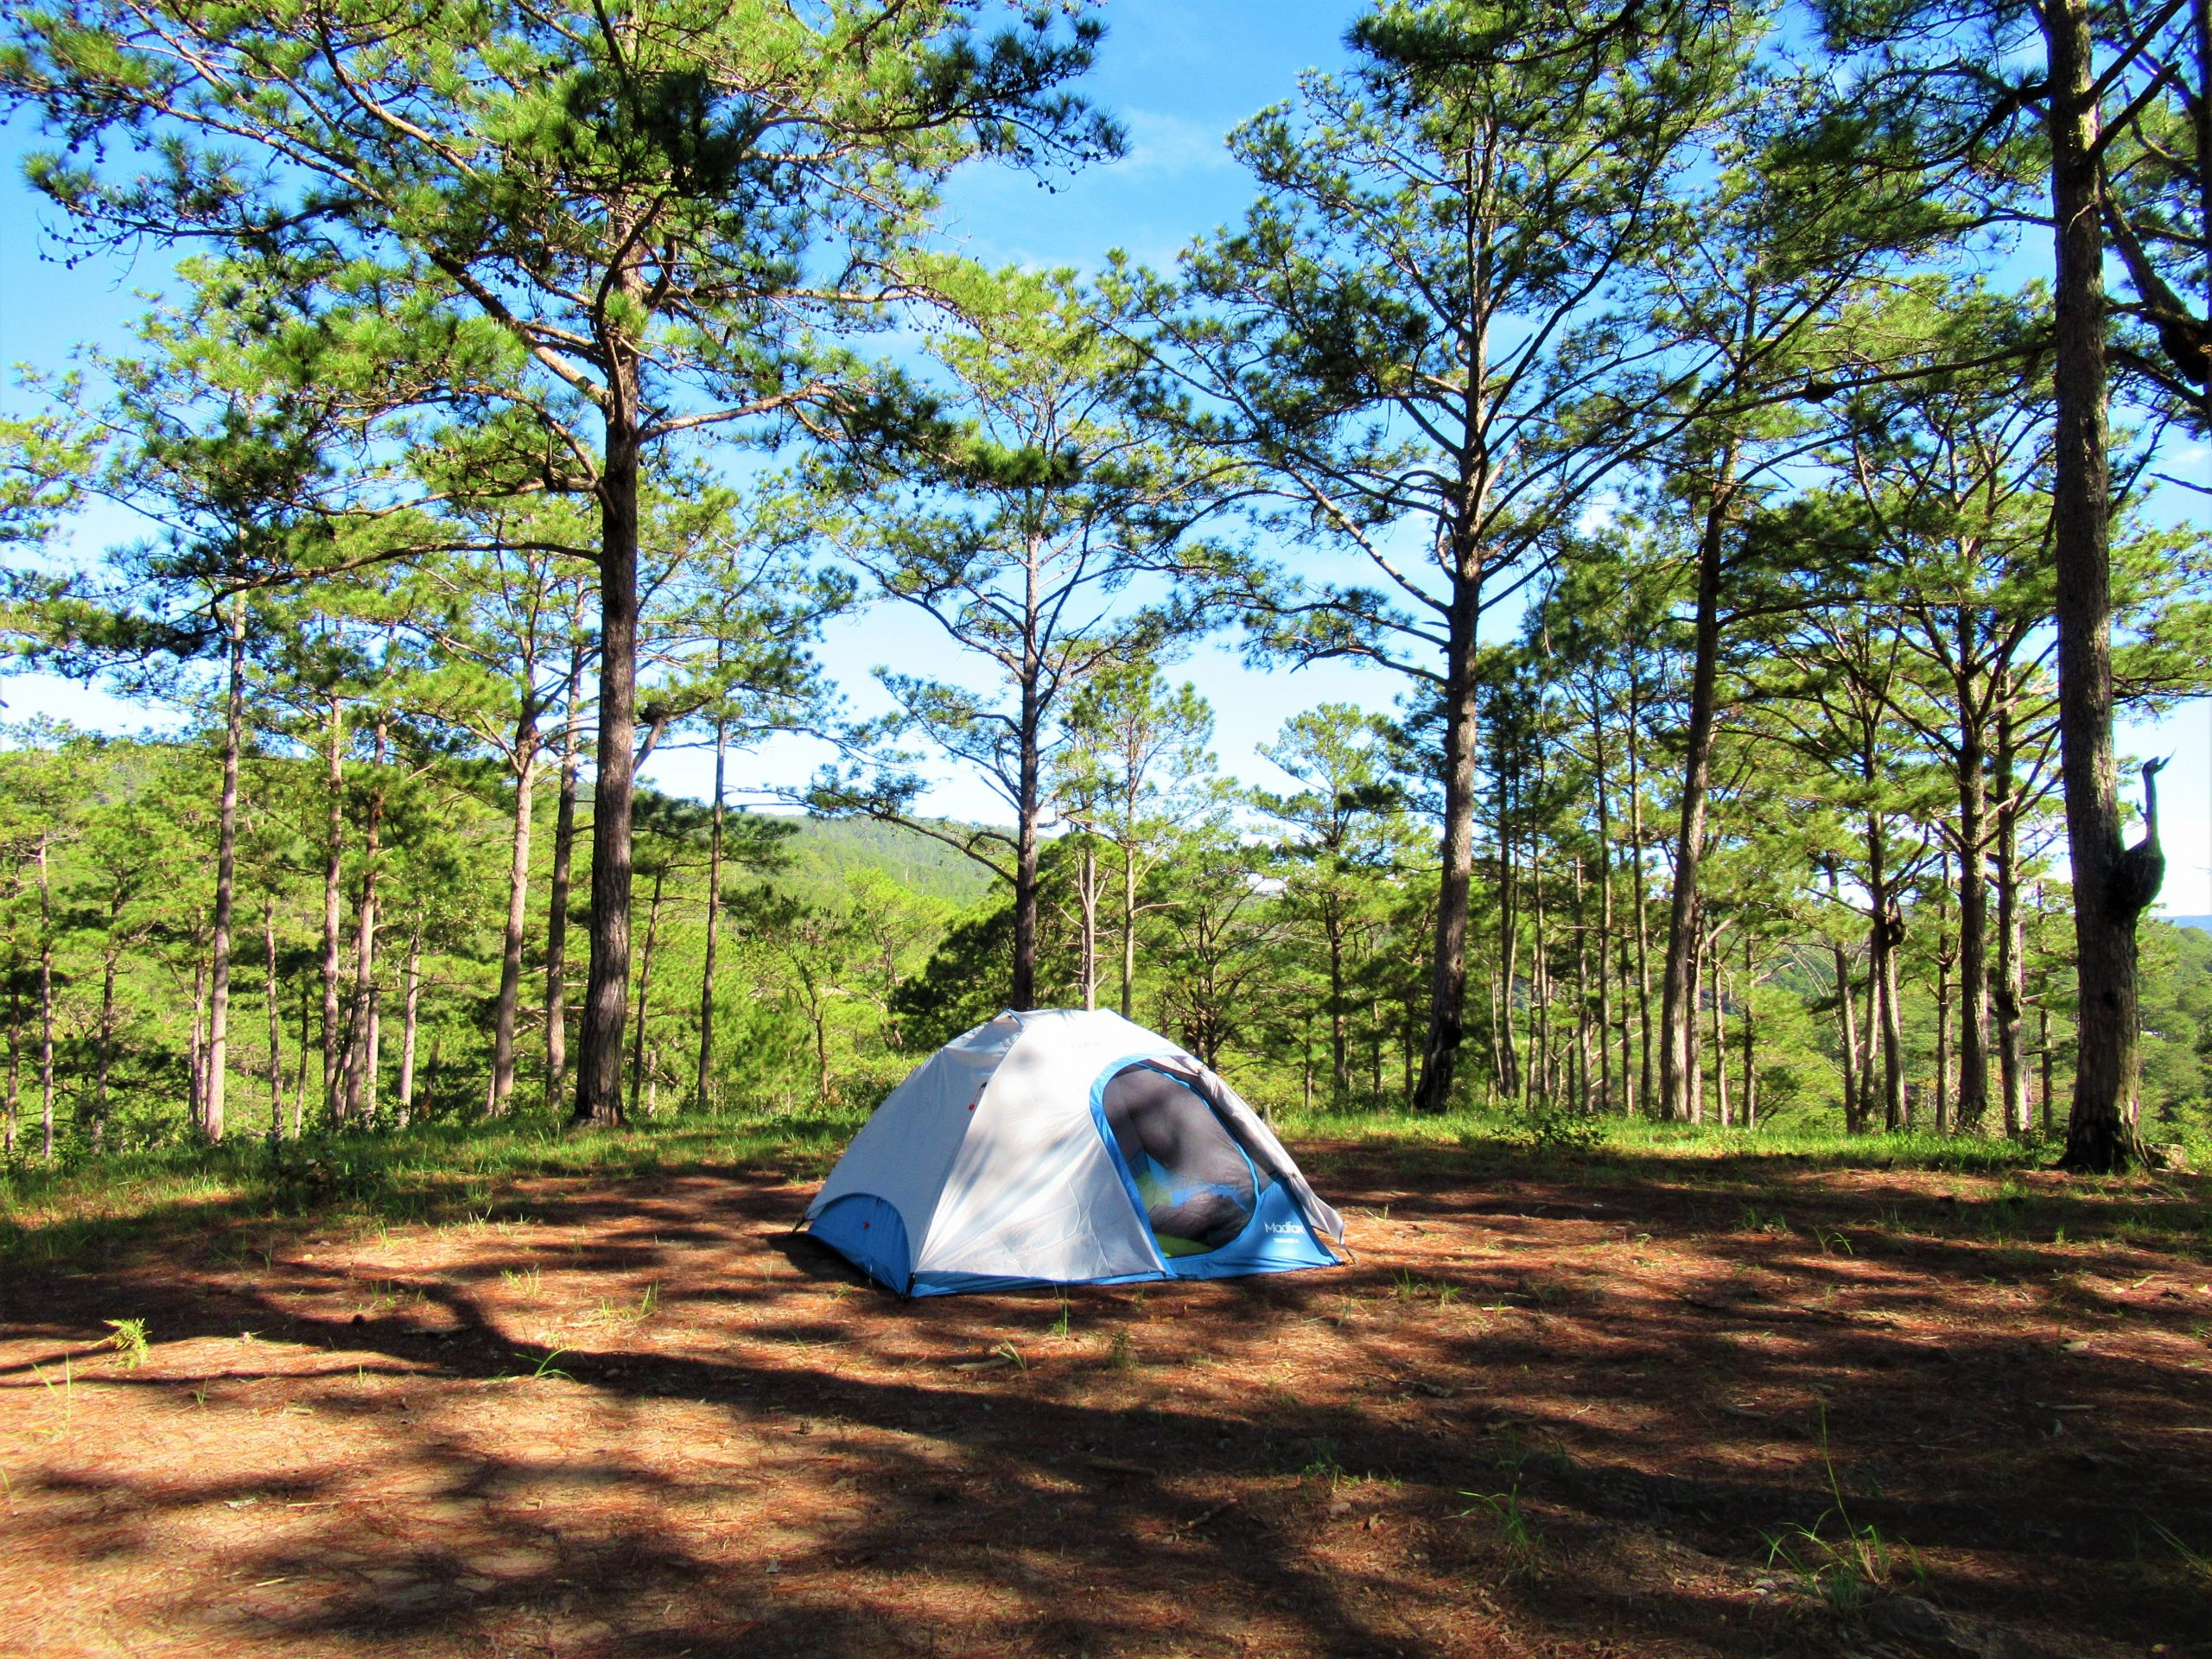 New Year's Camping in the Pine Forests, Dalat, Vietnam